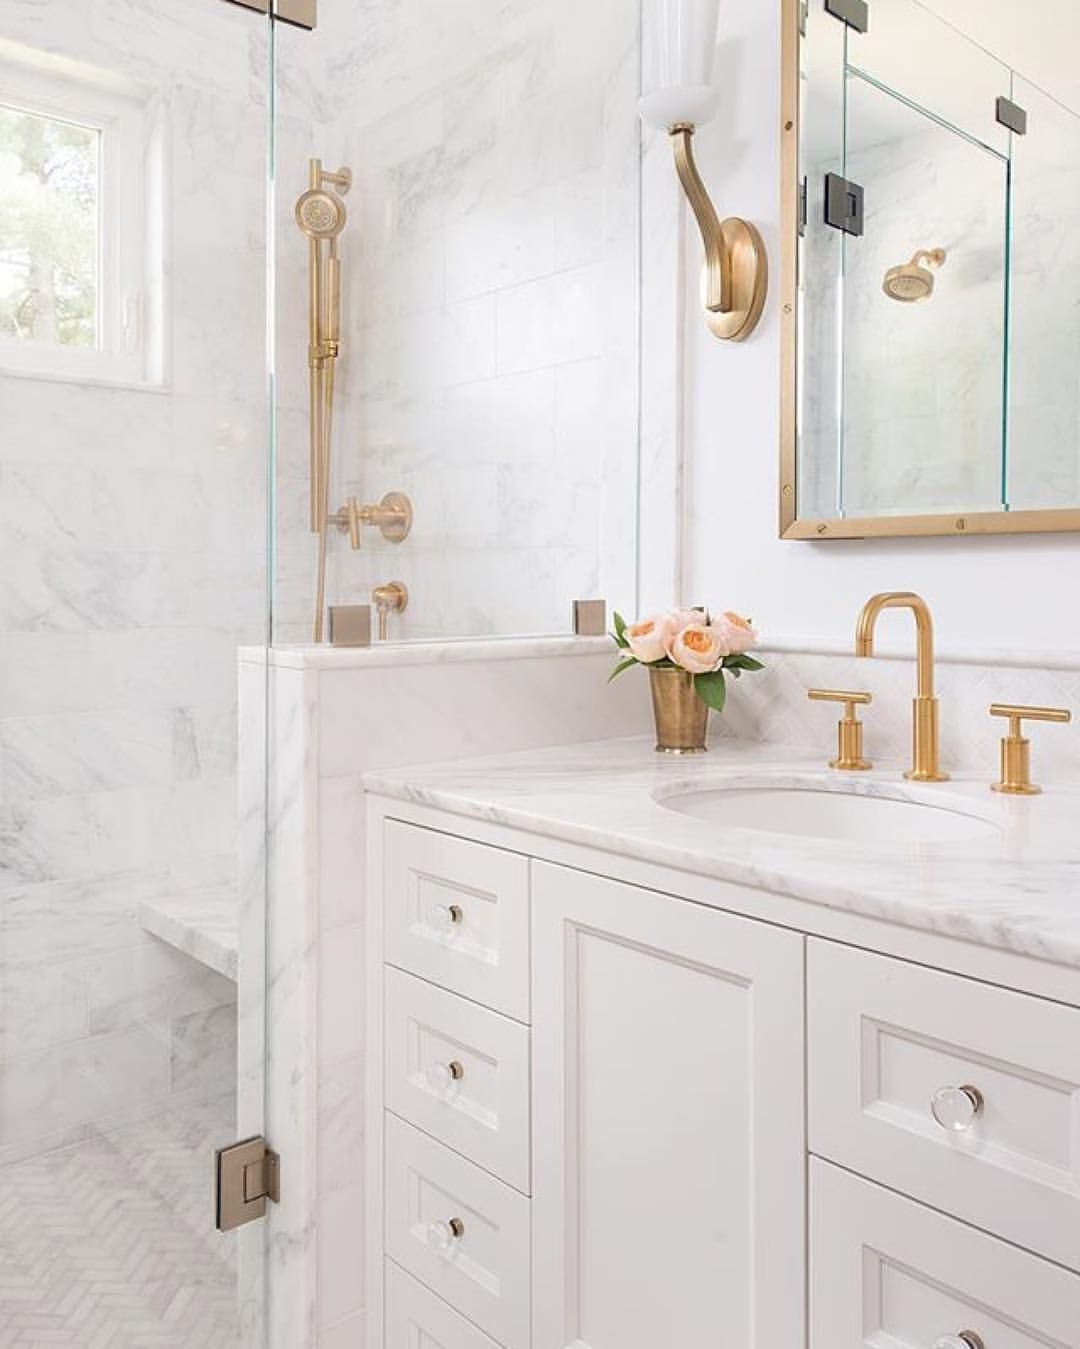 A White Bathroom Creates The Perfect Palate For Fixtures To Really - White bathroom faucet fixtures